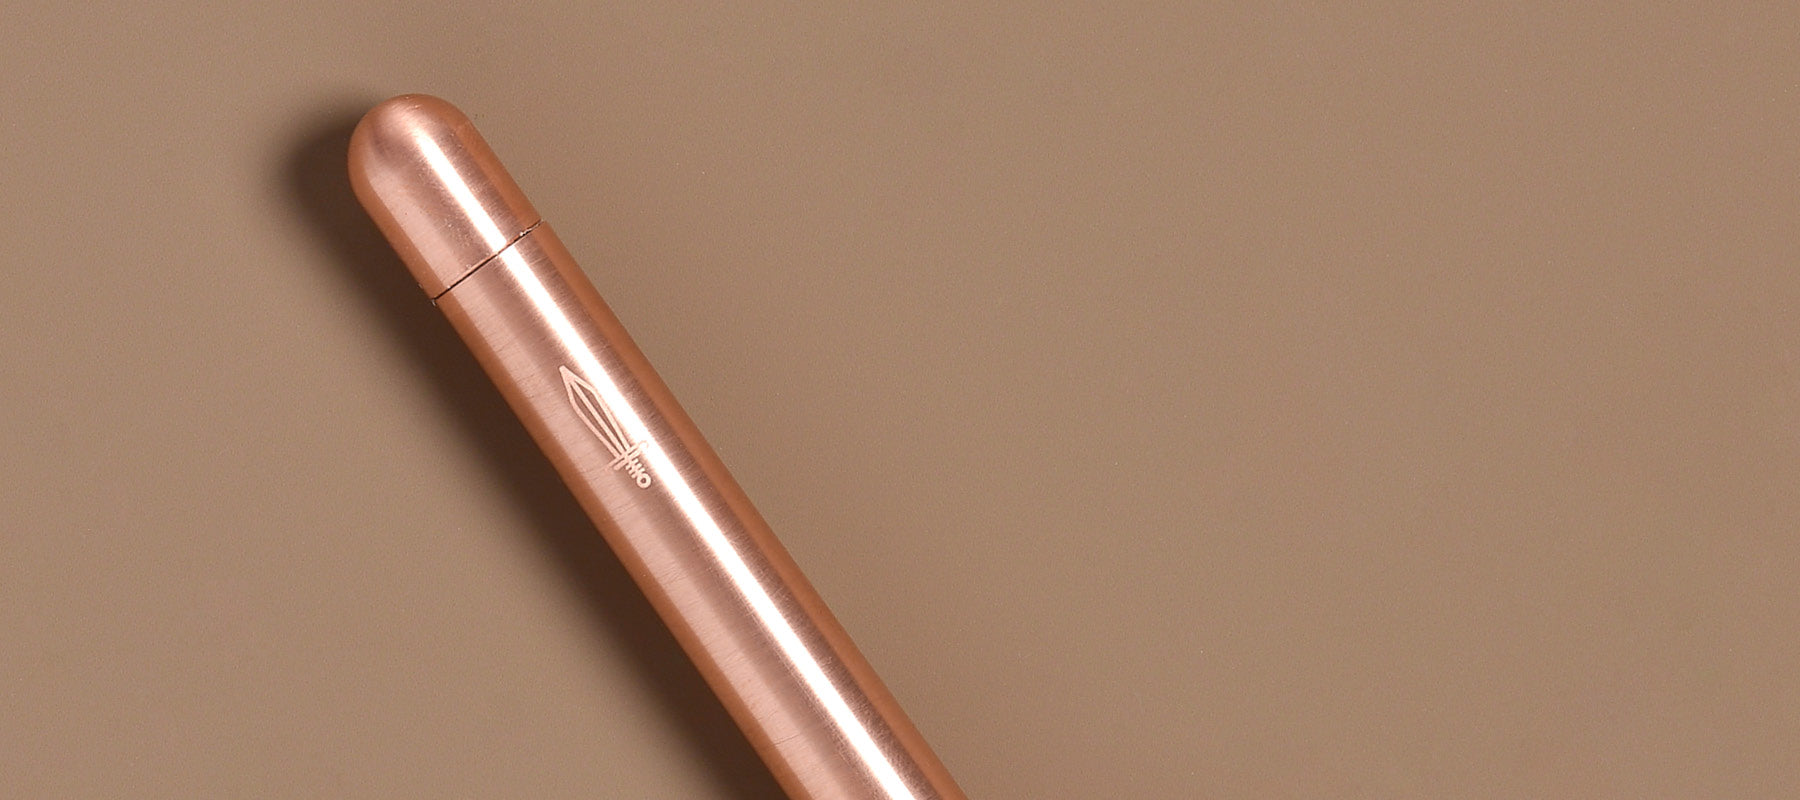 Close up of twist mechanism and sword detail on Squire copper pen